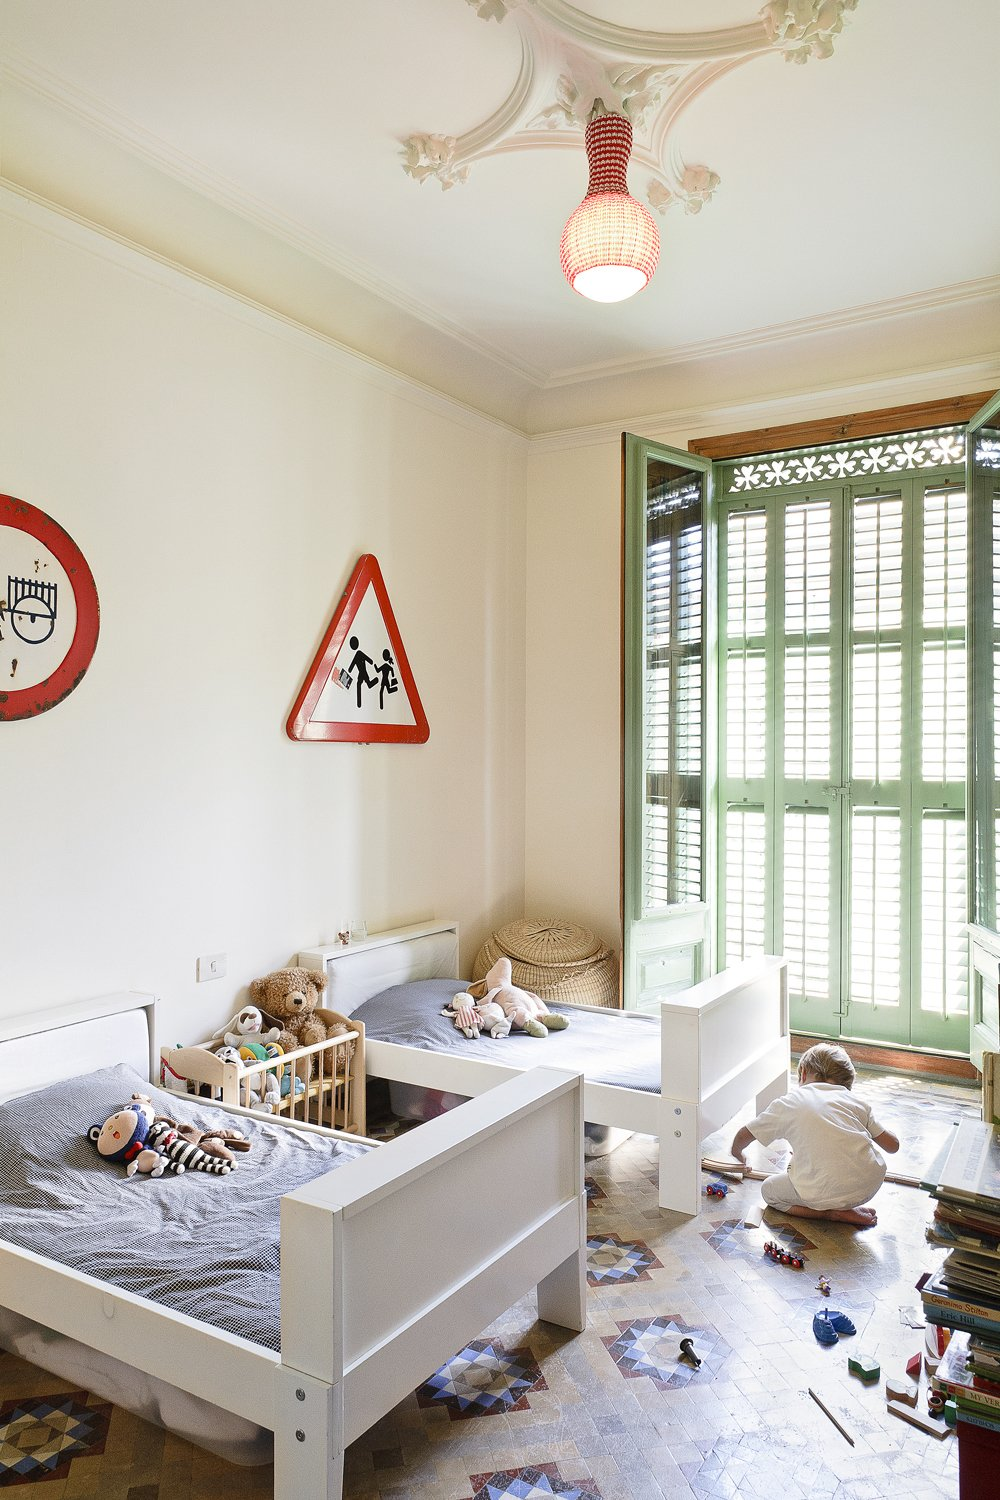 The architects' two young children occupy this bright bedroom, furnished with Ikea beds. Another custom lamp illuminates the space. Tagged: Kids Room, Bedroom, Toddler Age, Bed, and Neutral Gender.  Photo 6 of 8 in Historic Details and Playful Modernism Meet in this Stunning Barcelona Flat